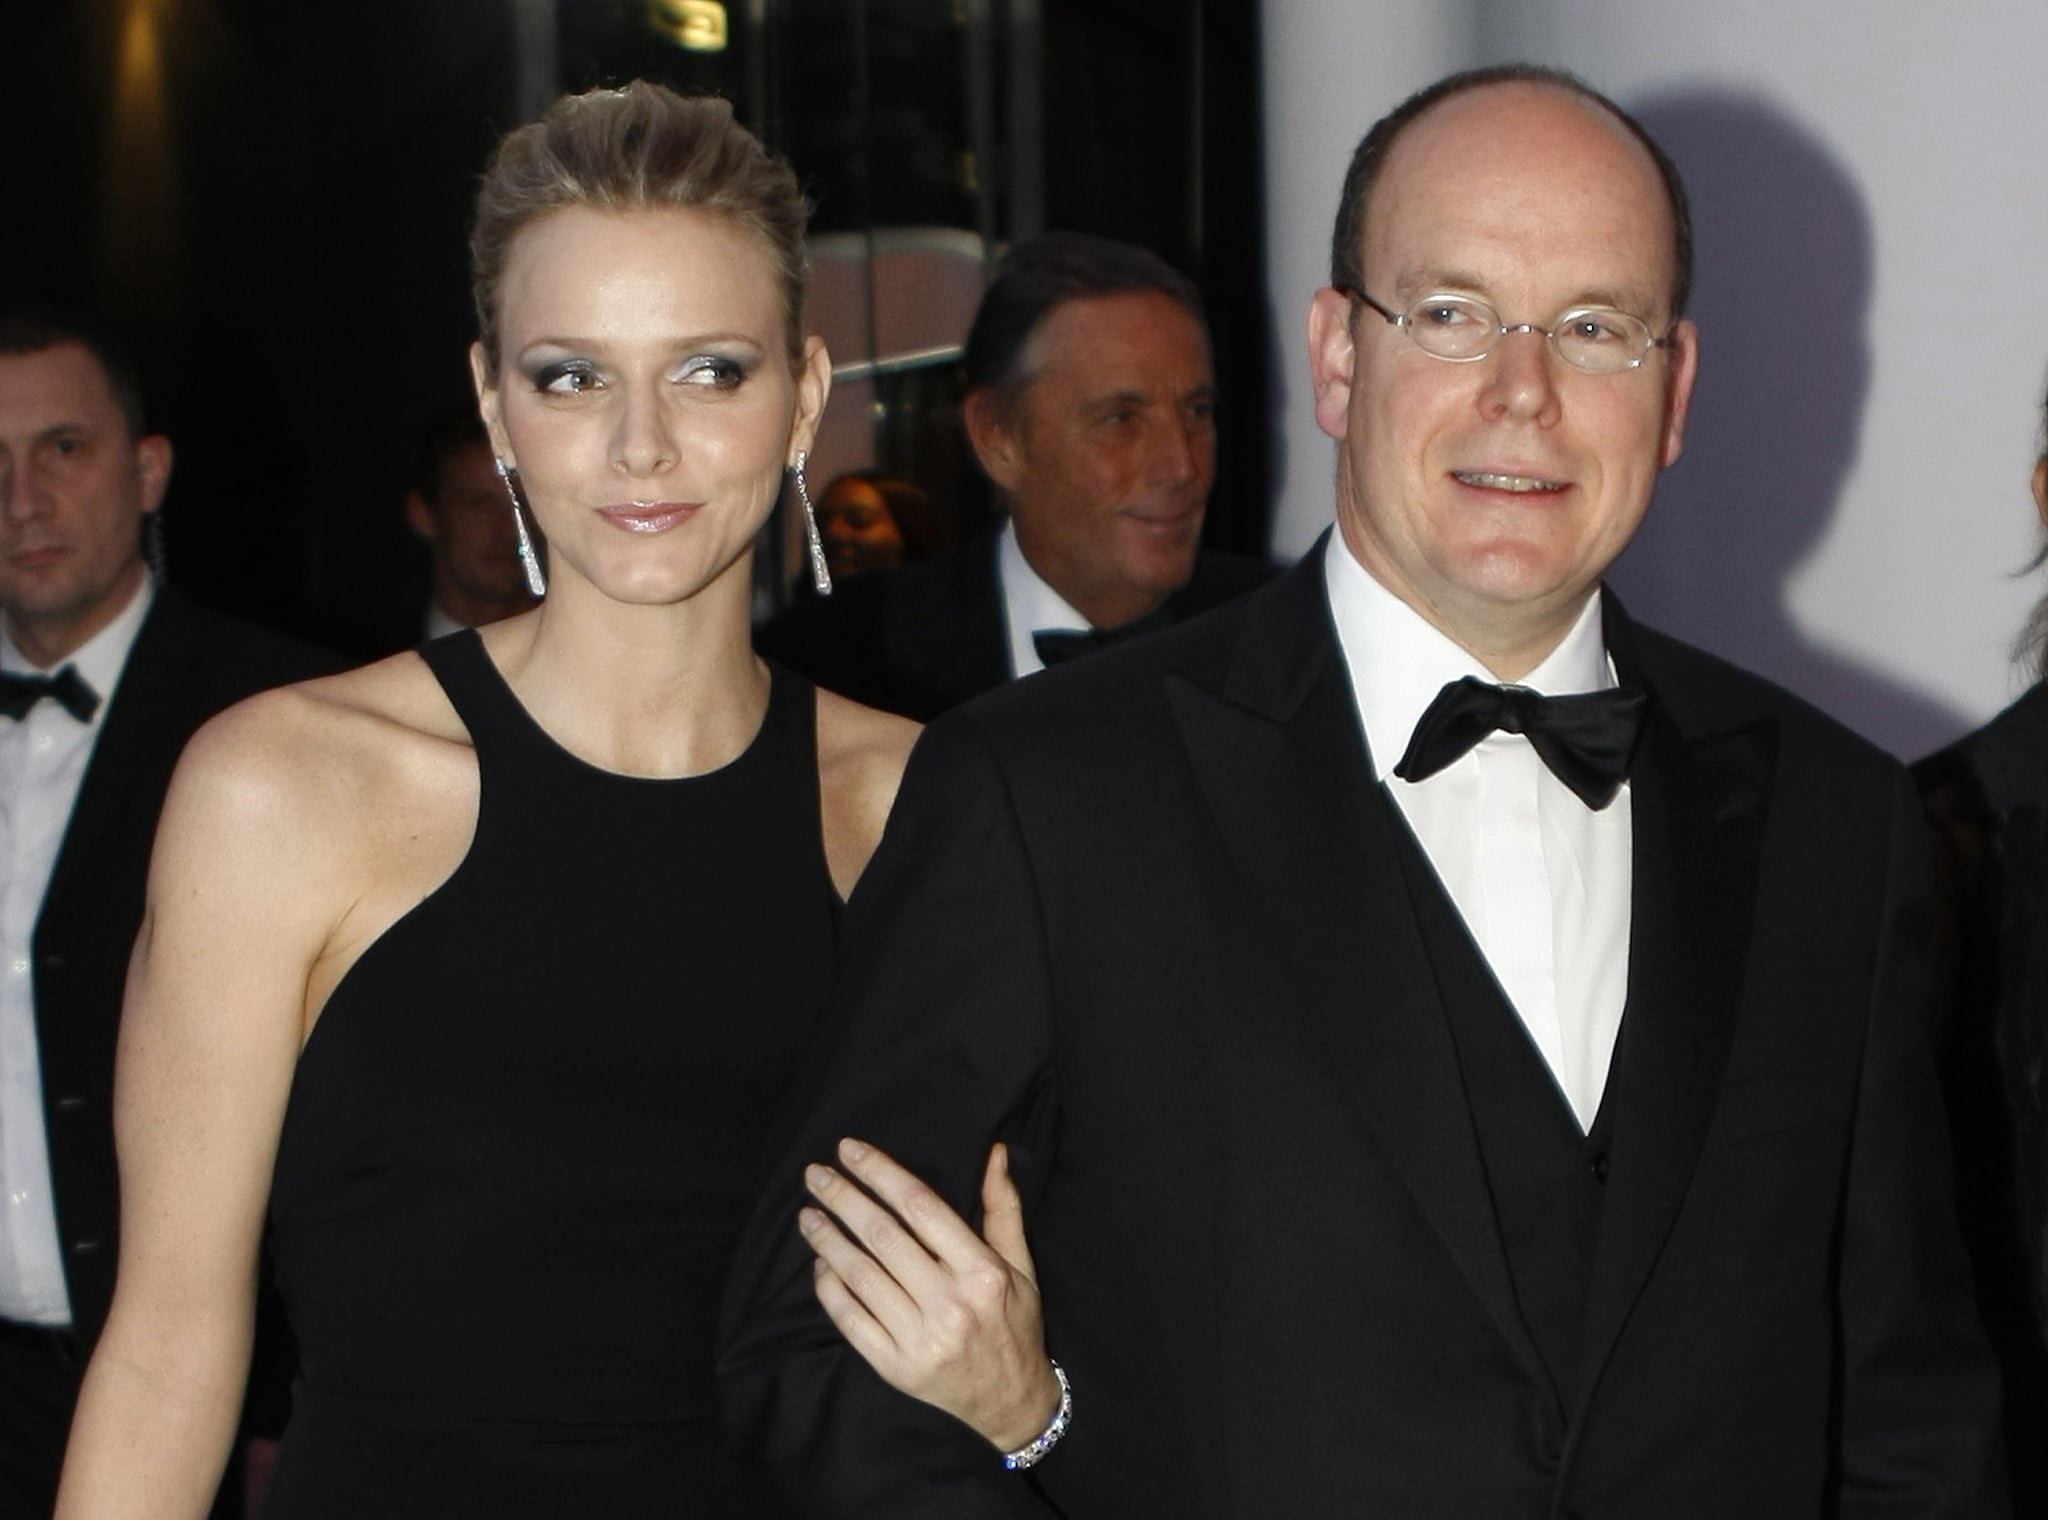 Princess Charlene and Prince Albert posed together before the 2009 FIA prize presentation gala in December 2009. Source: Getty / Eric Gaillard/AFP